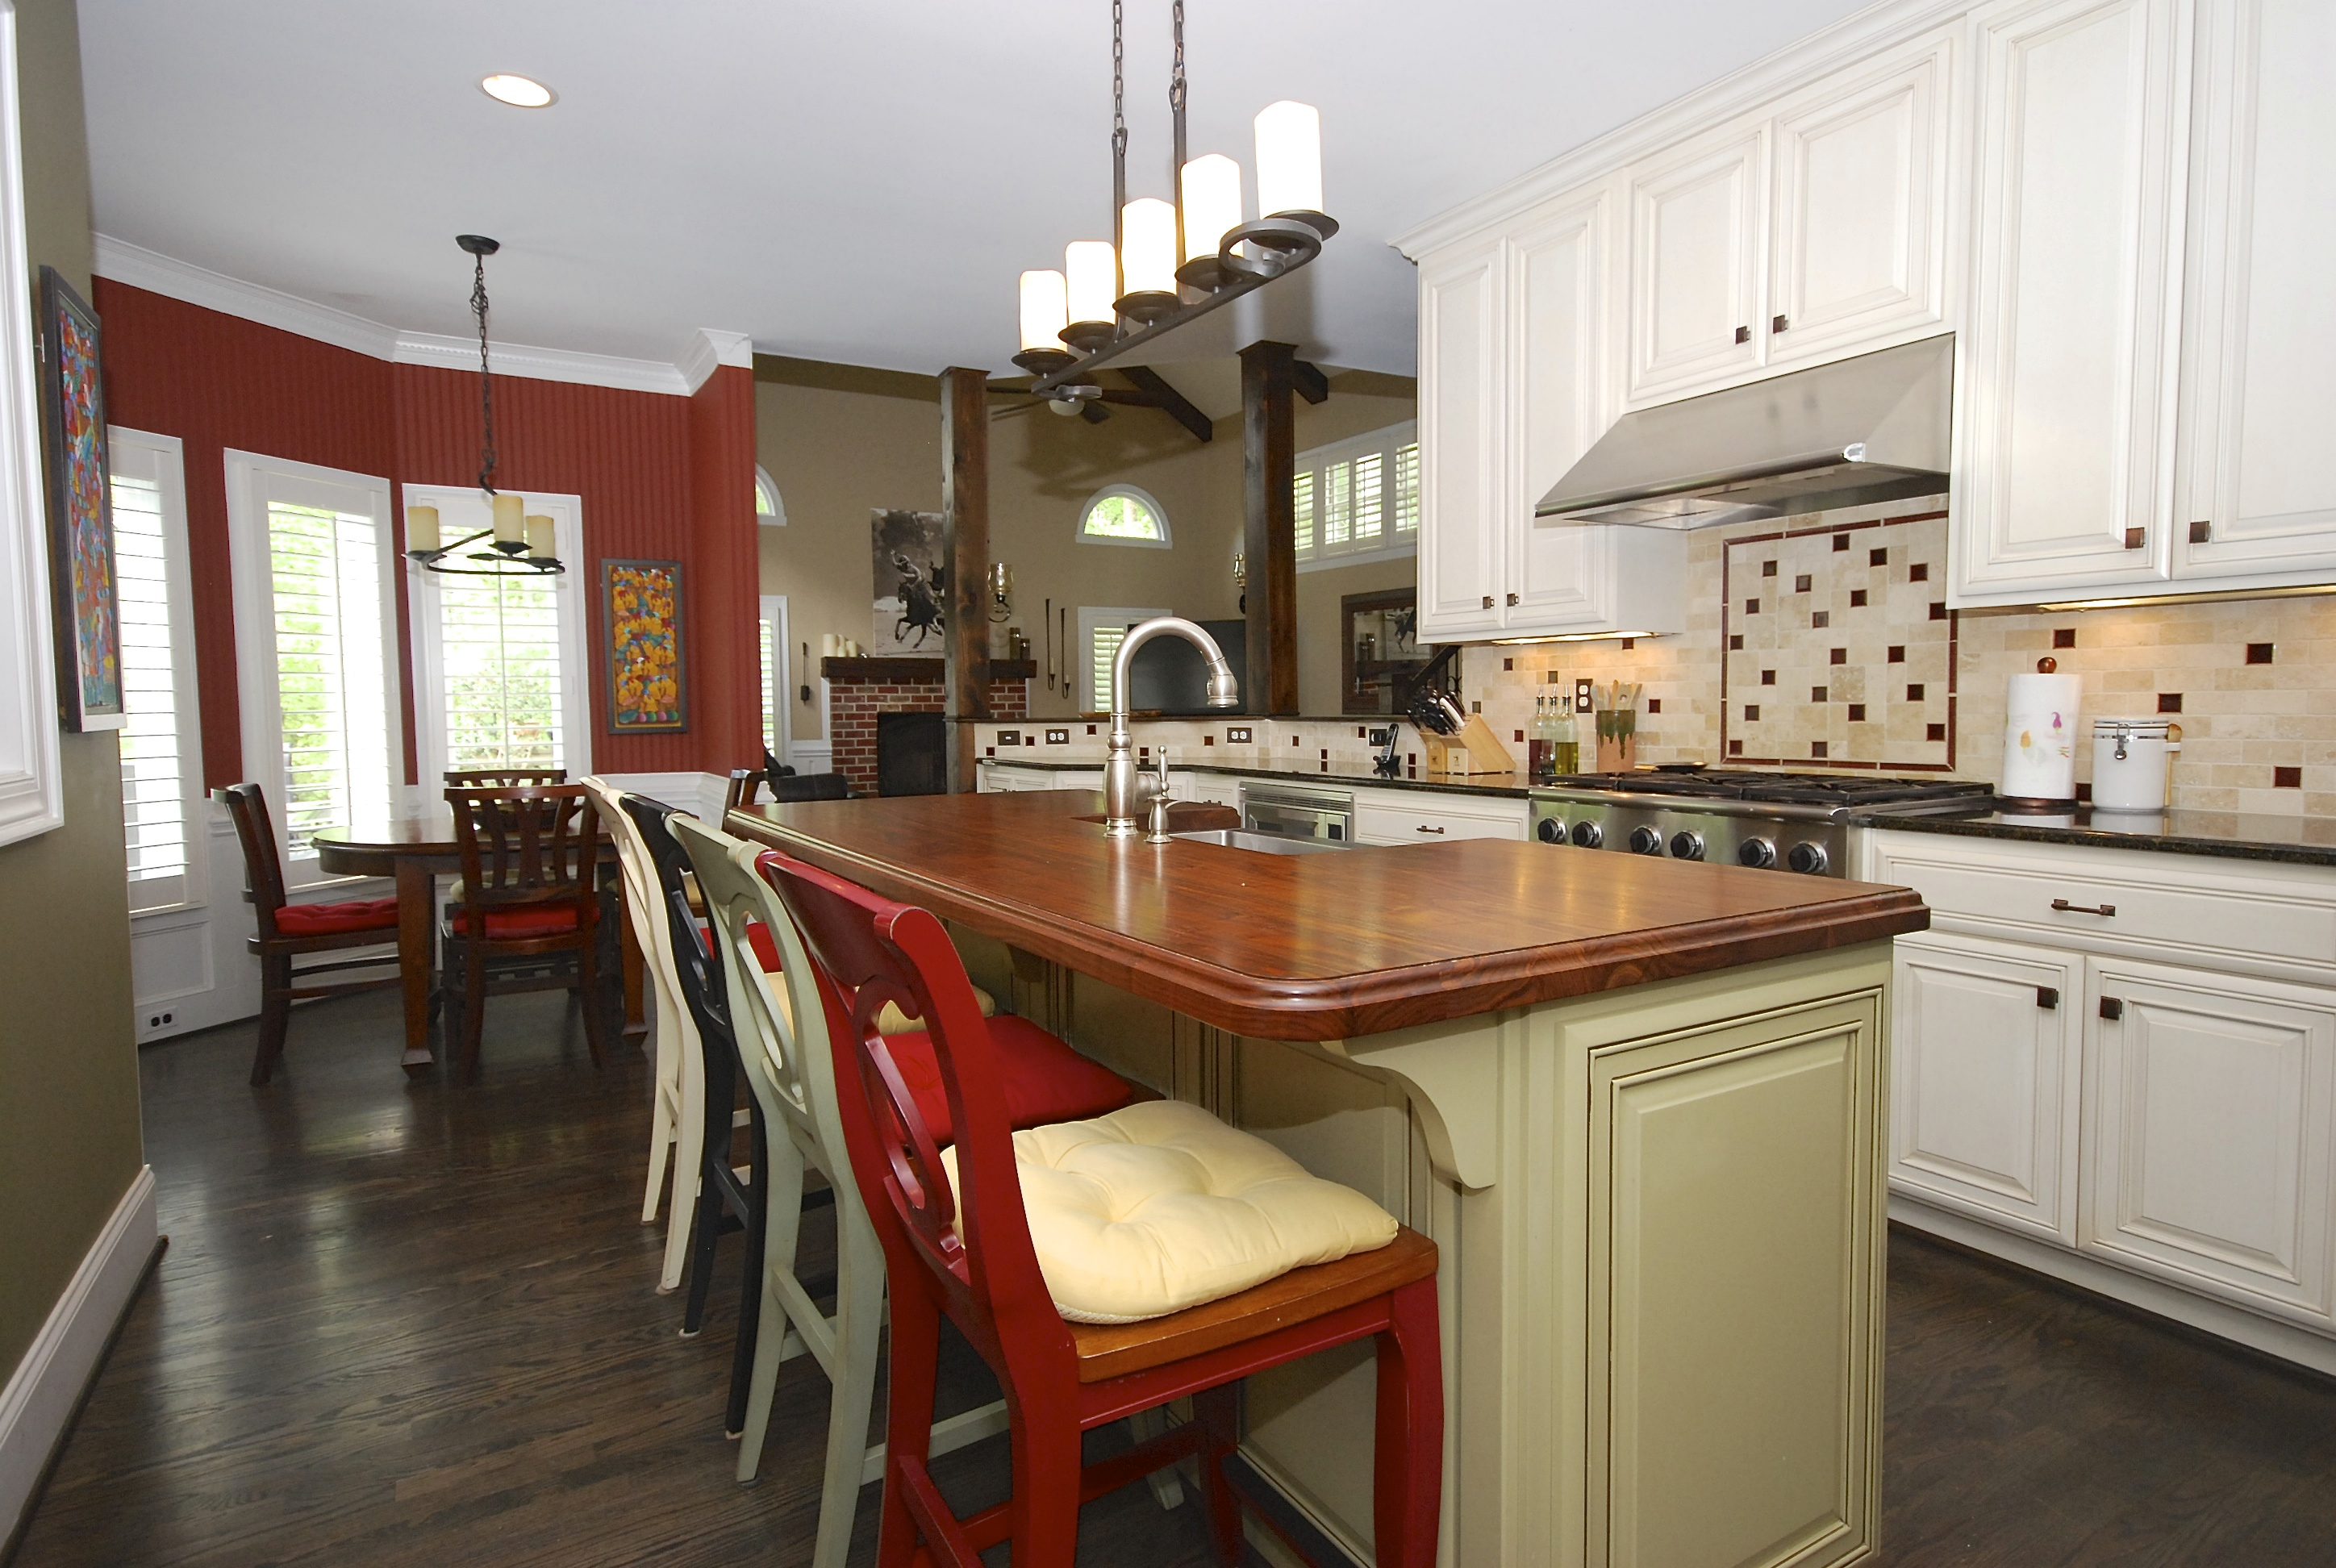 for shaped reviews makeup bathrooml showroom charlotte countertops cabinets small with kitchen nc sale broken bathroom table sink savoy sacks and paperwhite furniture lowes exclusive baltic amazoncom countertop size designer ideas granite ikea by mosaic tile corner of ann vanity full design silkroad fine